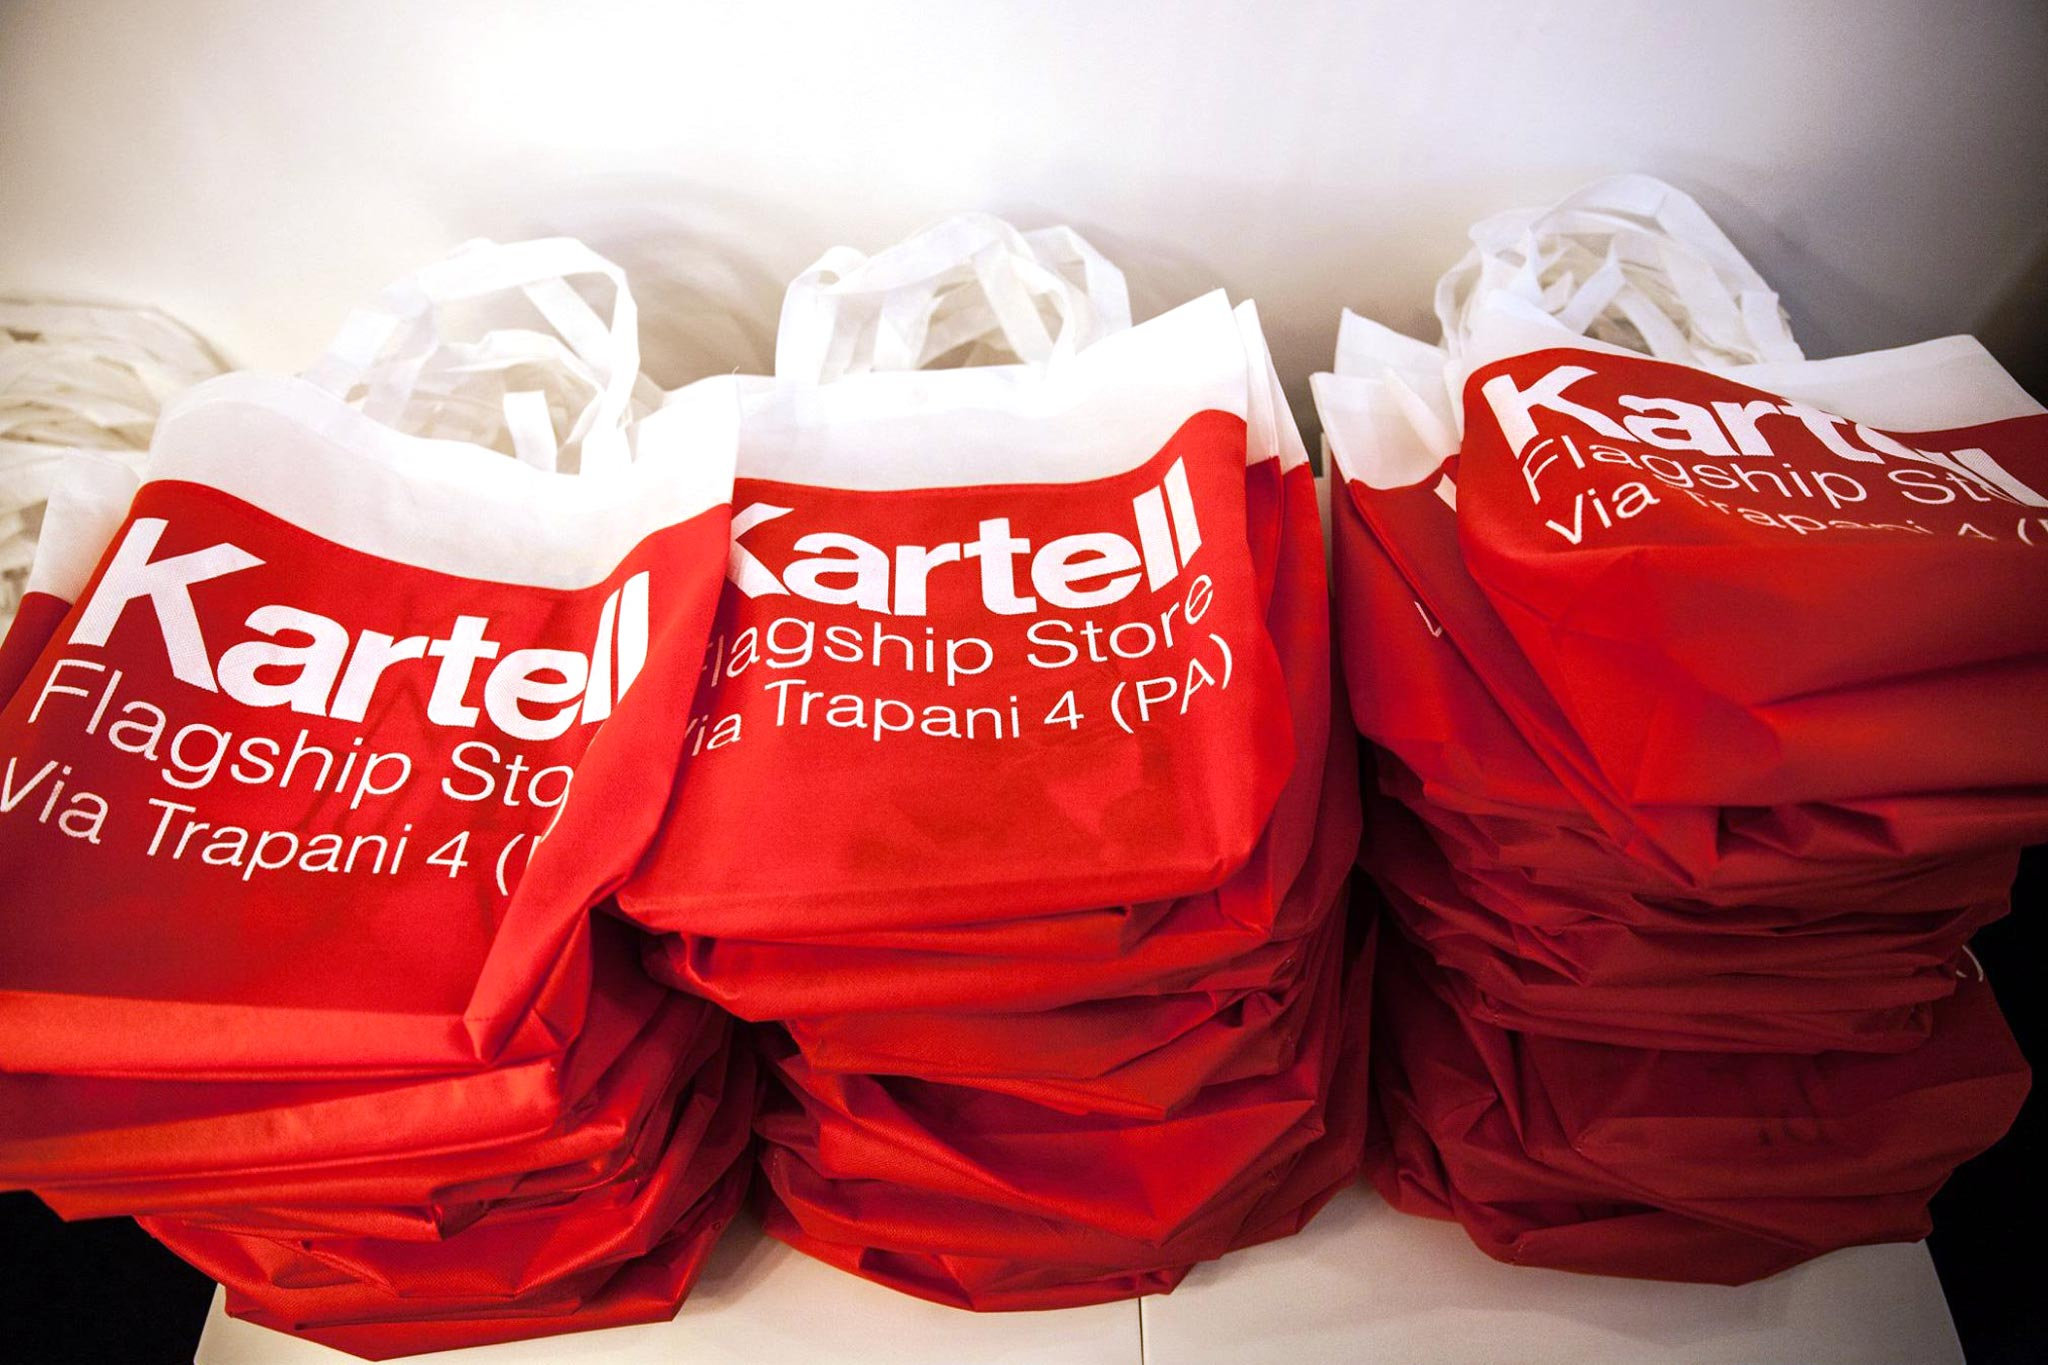 Kartell flagship store Palermo 11